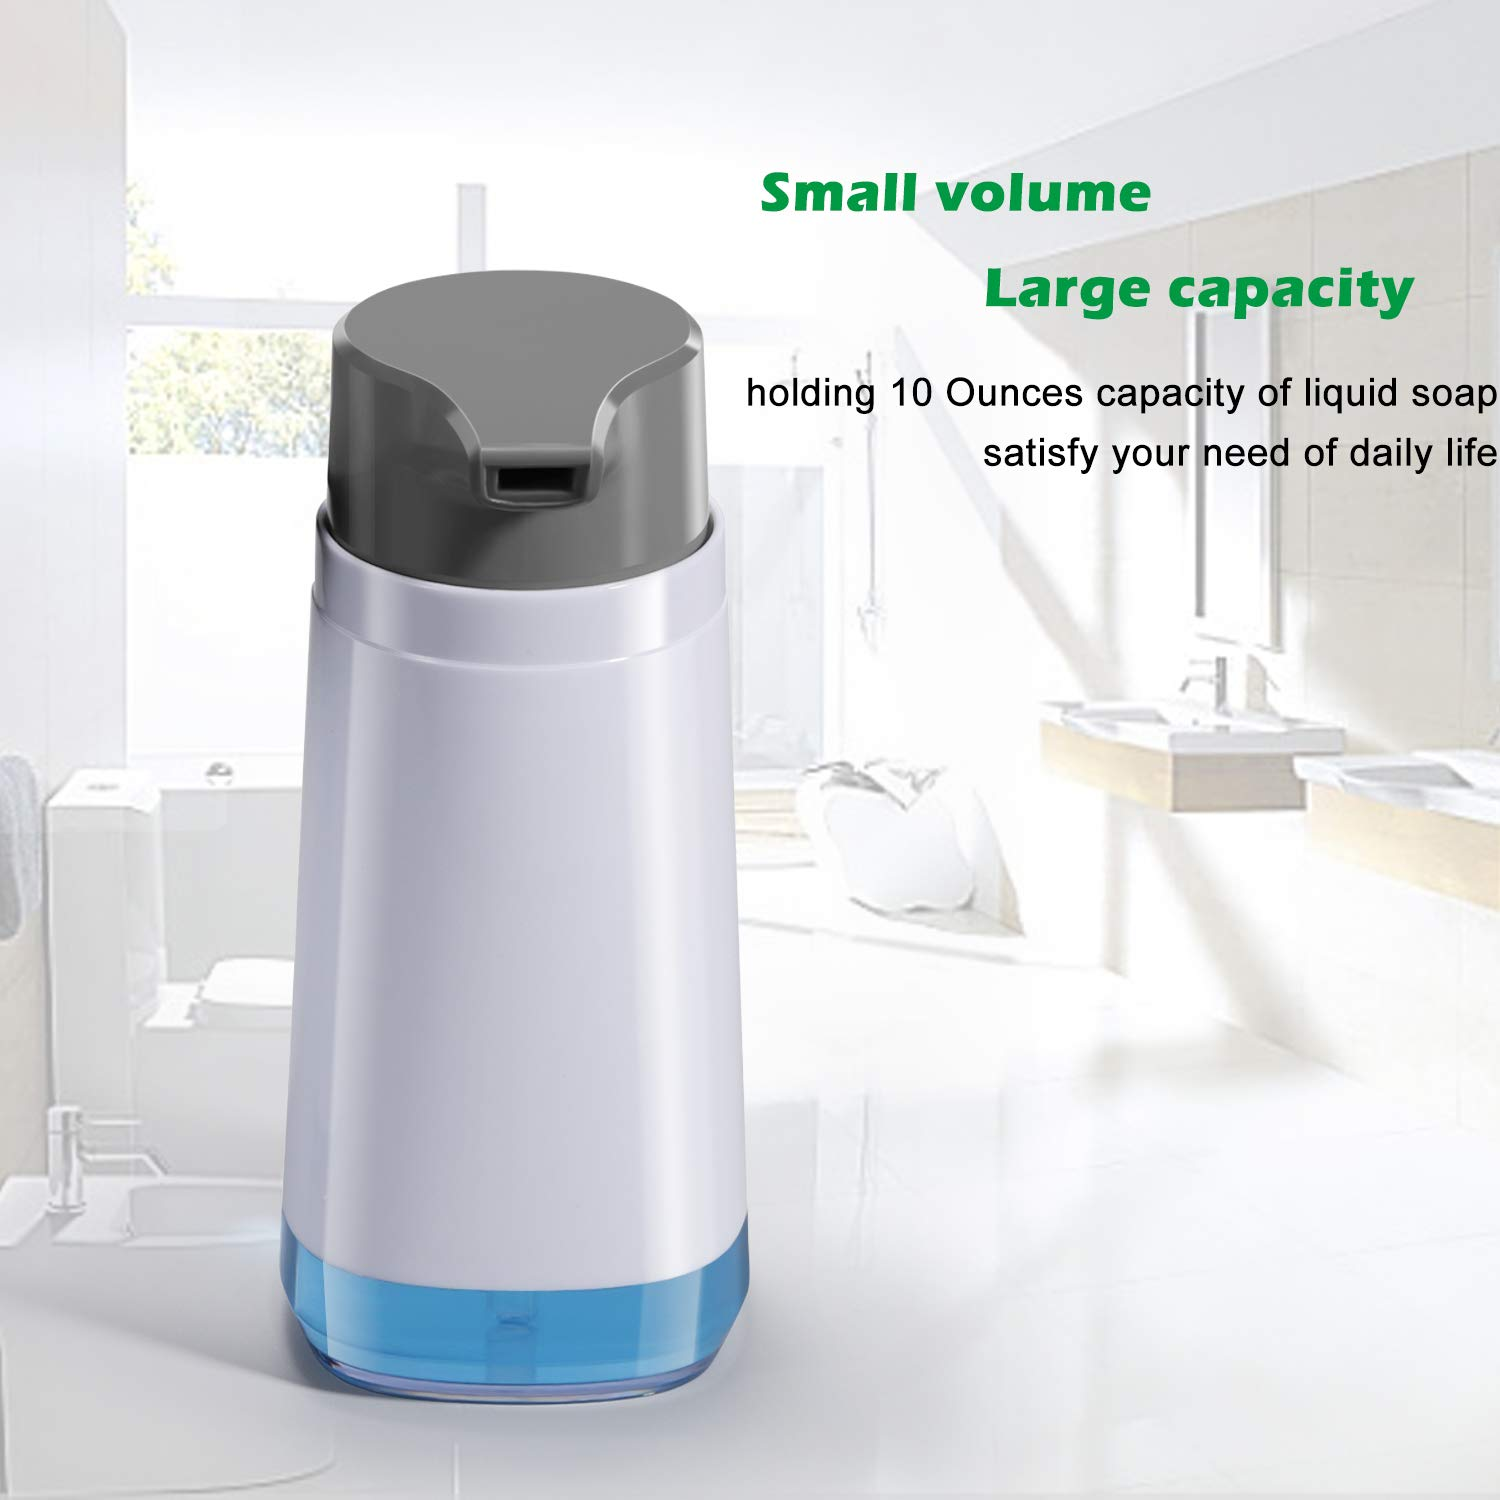 Dish Soap Dispenser for Kitchen Sink 10oz/300ml Rustproof ABS BPA Free Bottle Liquid Hand Soap Dispenser Pump for Bathroom